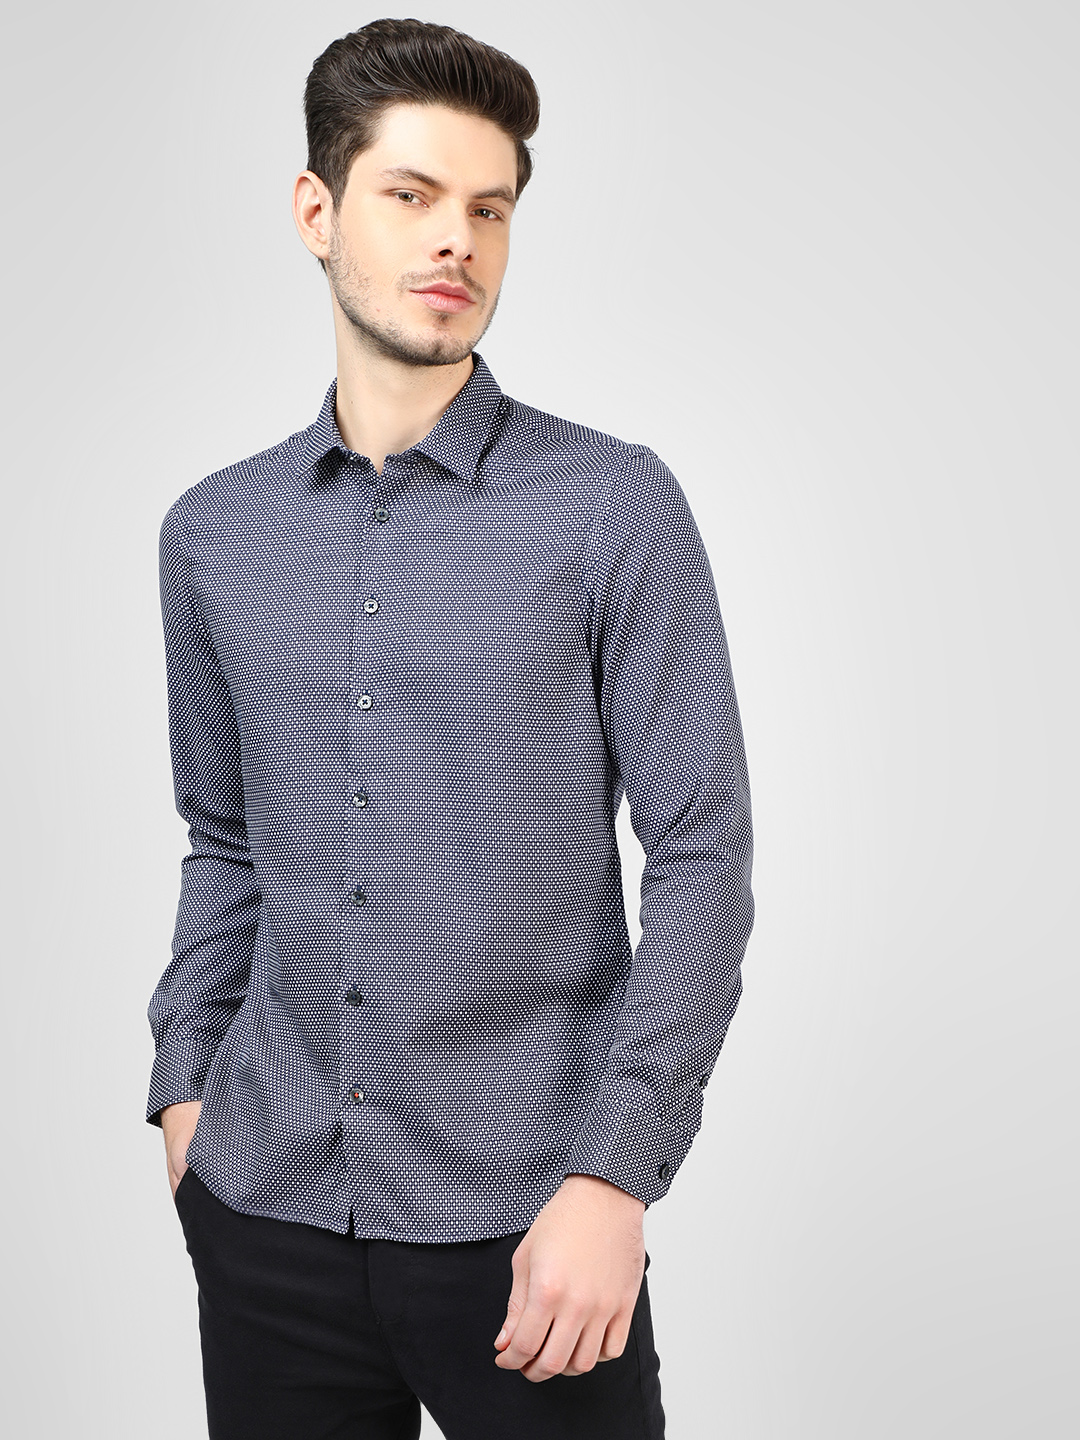 SCULLERS Navy Pin Dot Casual Shirt 1